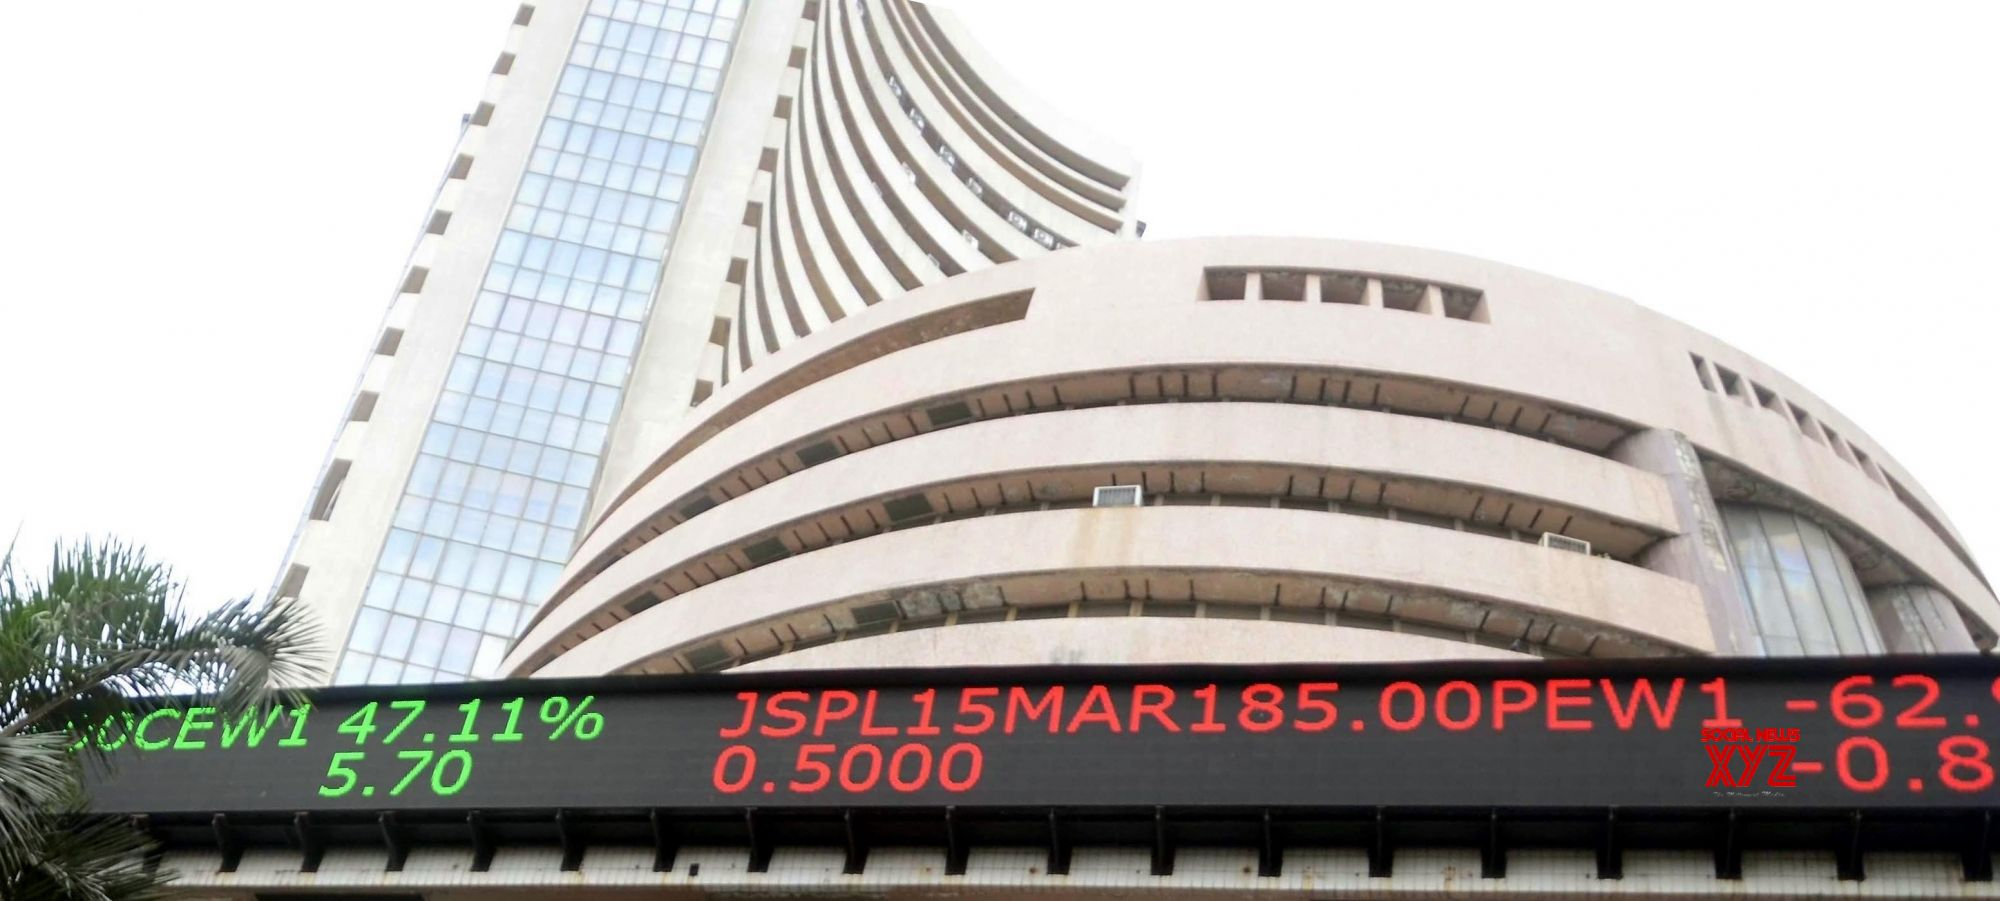 Equity market dodges oil bullet, surges on trade talks